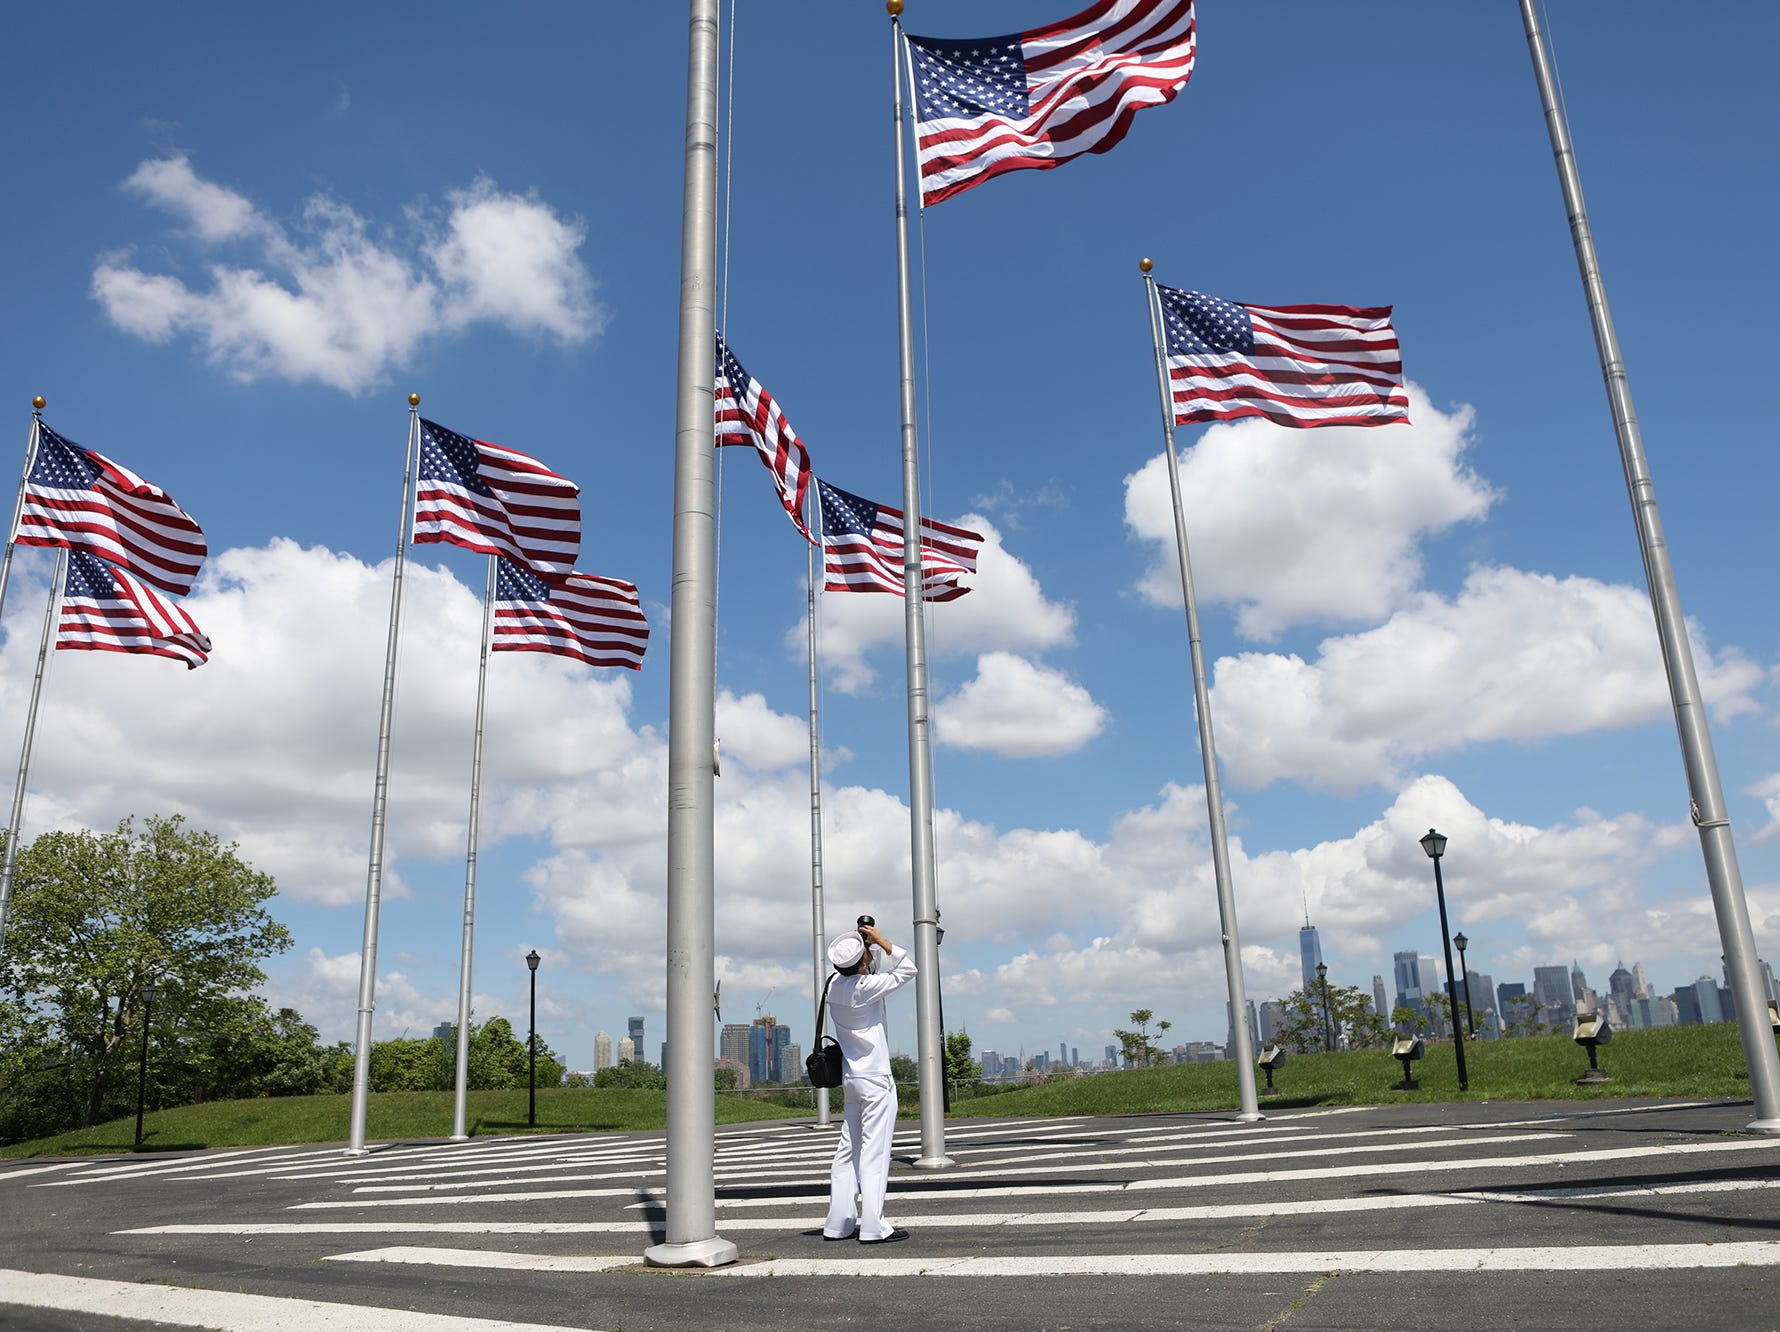 Petty Officer First Class, Carlos Vazquez, of Paterson, takes pictures of flags while in Liberty State Park.  Vazquez was in Jersey City to take pictures of ships coming up New York Harbor for Fleet Week. Wednesday, May 23, 2018